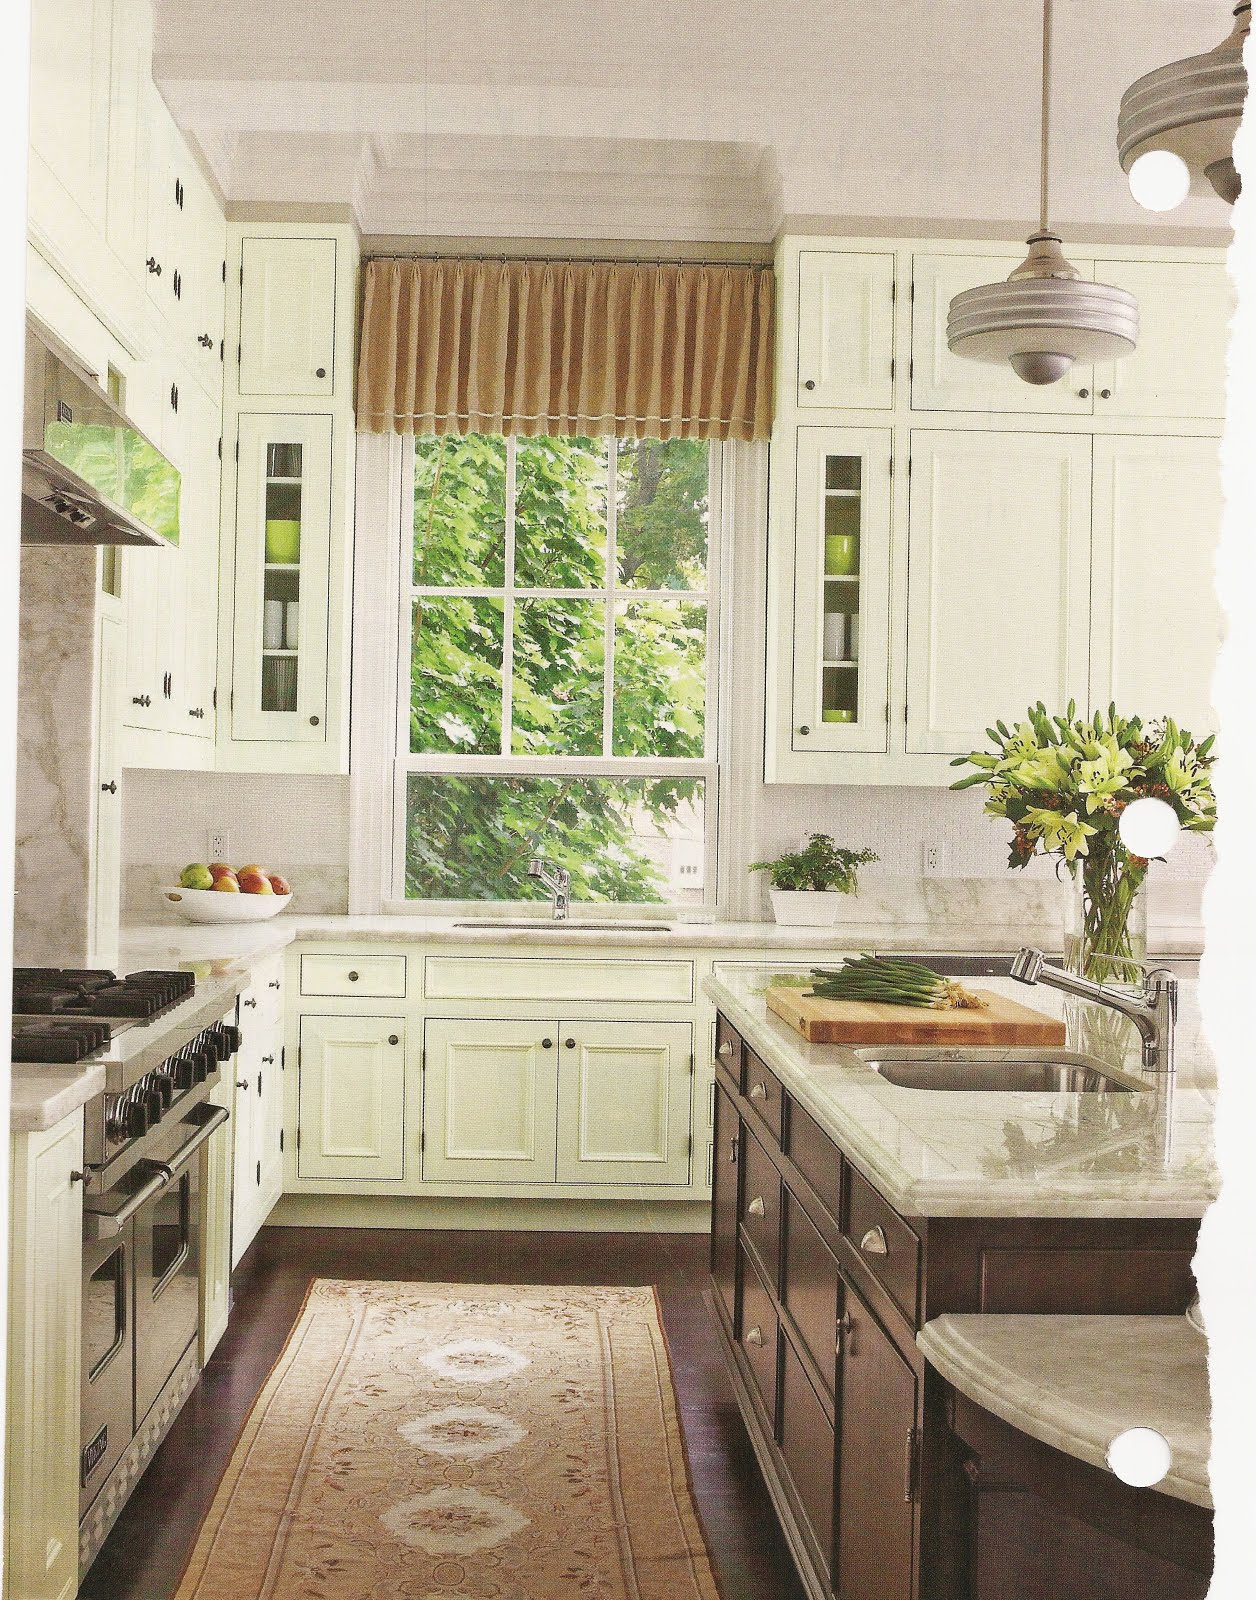 Casa Forney Kitchen Cabinets